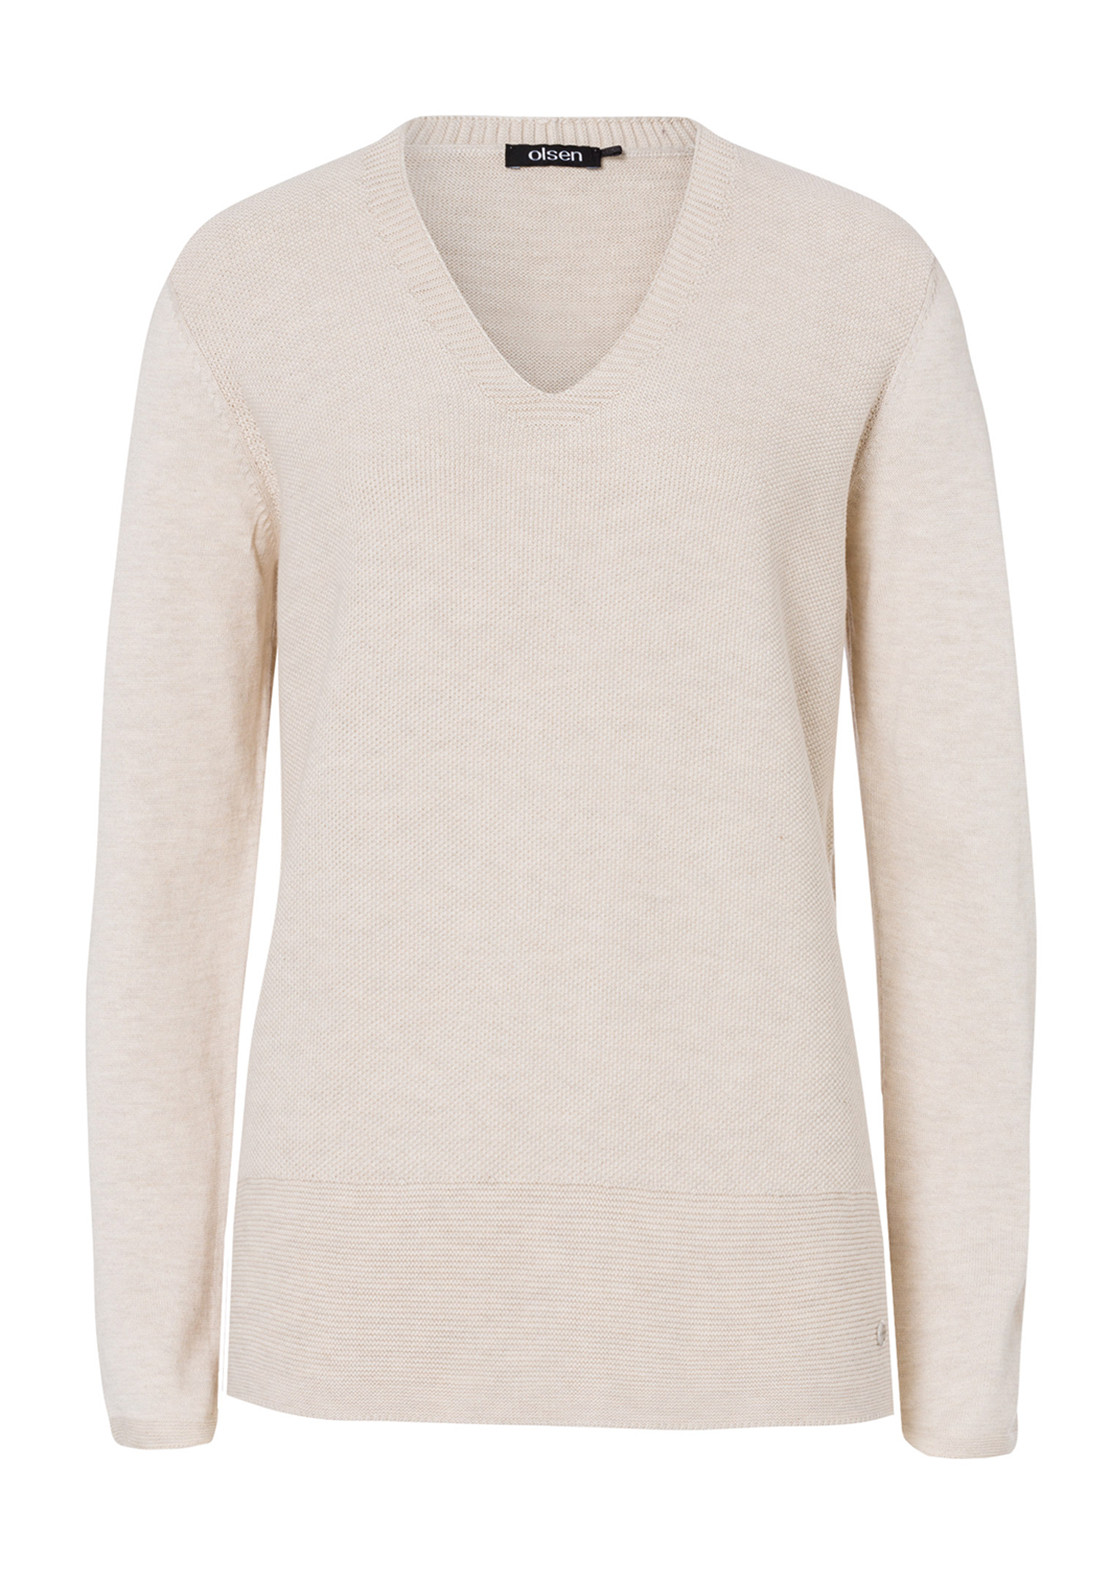 Olsen Cotton Blend V-Neck Sweater Jumper, Beige